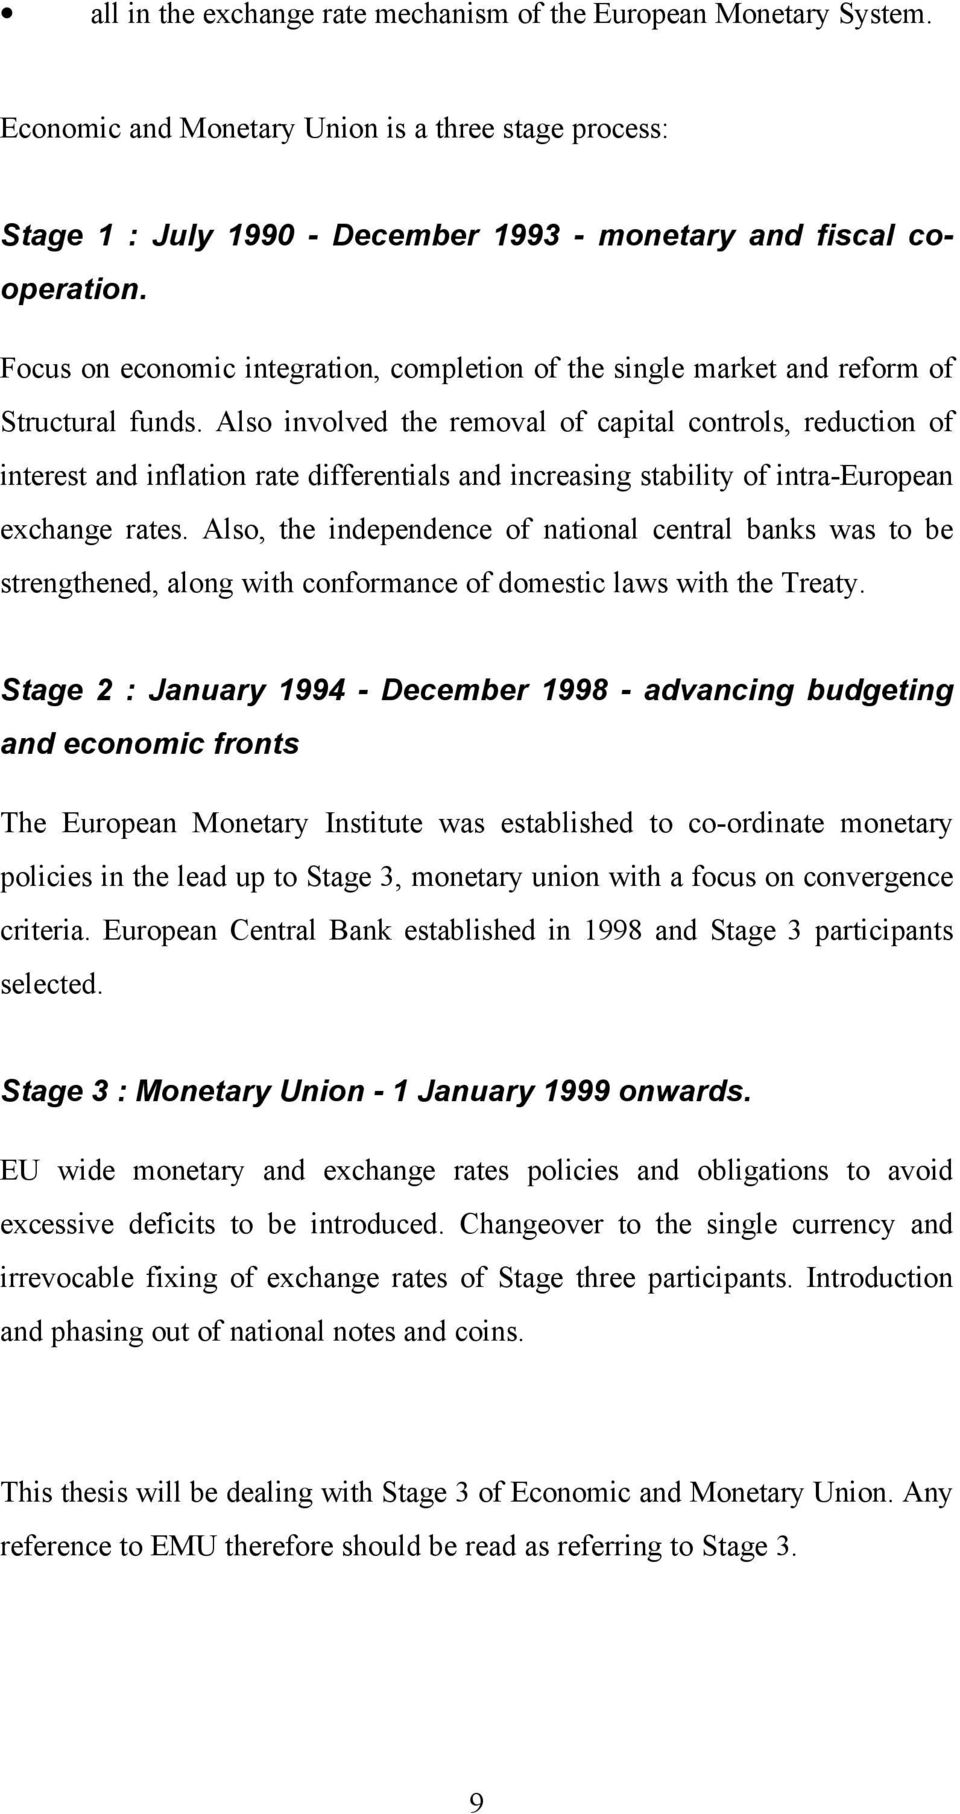 Also involved the removal of capital controls, reduction of interest and inflation rate differentials and increasing stability of intra-european exchange rates.